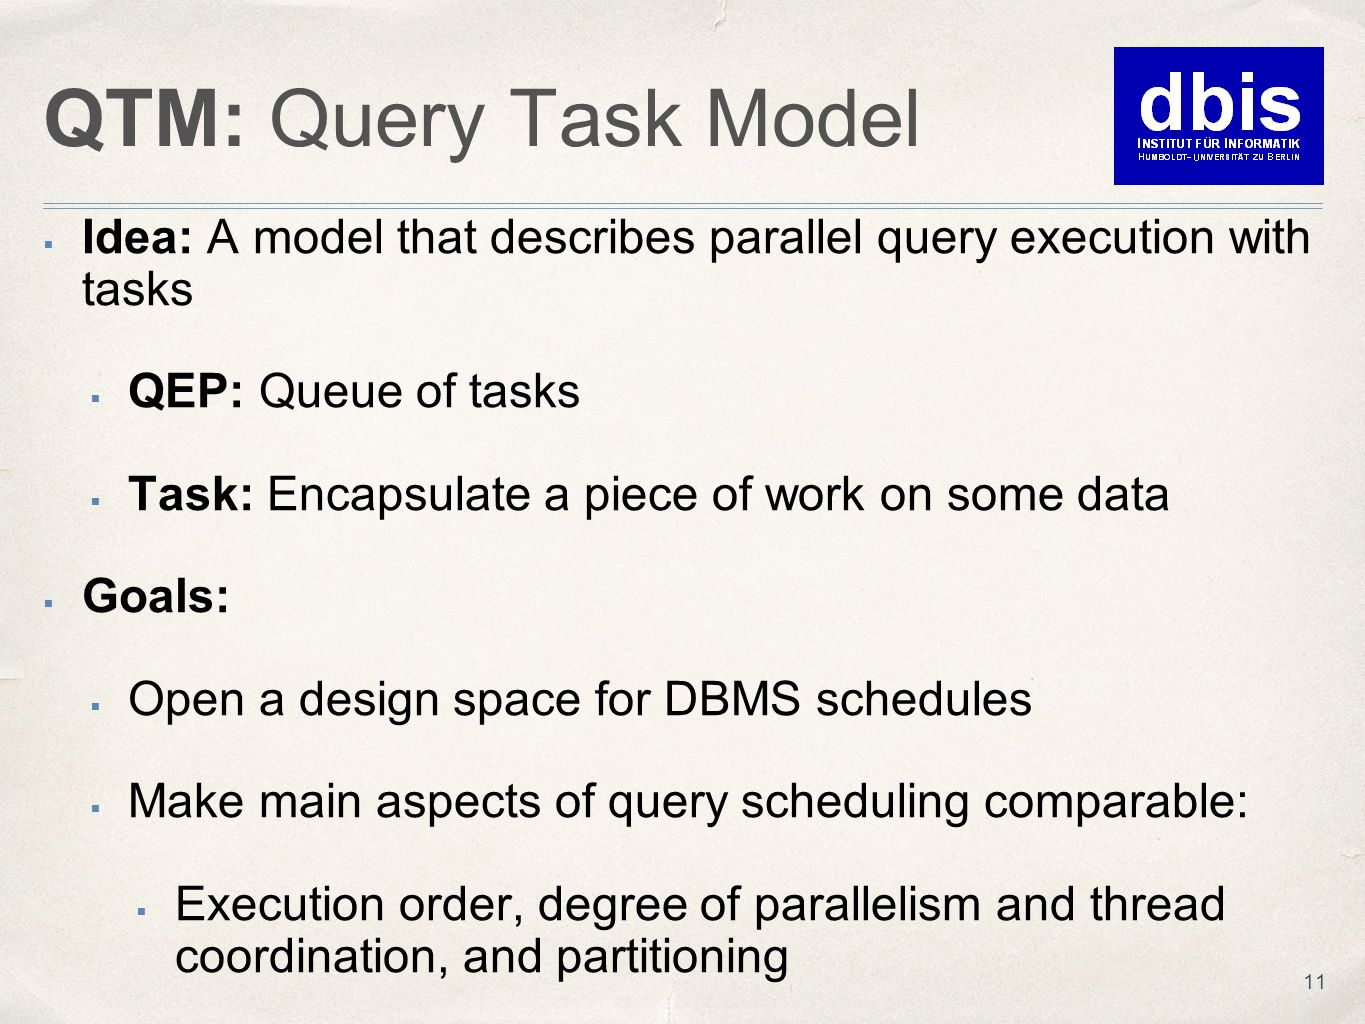 QTM: Query Task Model  Idea: A model that describes parallel query execution with tasks  QEP: Queue of tasks  Task: Encapsulate a piece of work on some data  Goals:  Open a design space for DBMS schedules  Make main aspects of query scheduling comparable:  Execution order, degree of parallelism and thread coordination, and partitioning 11